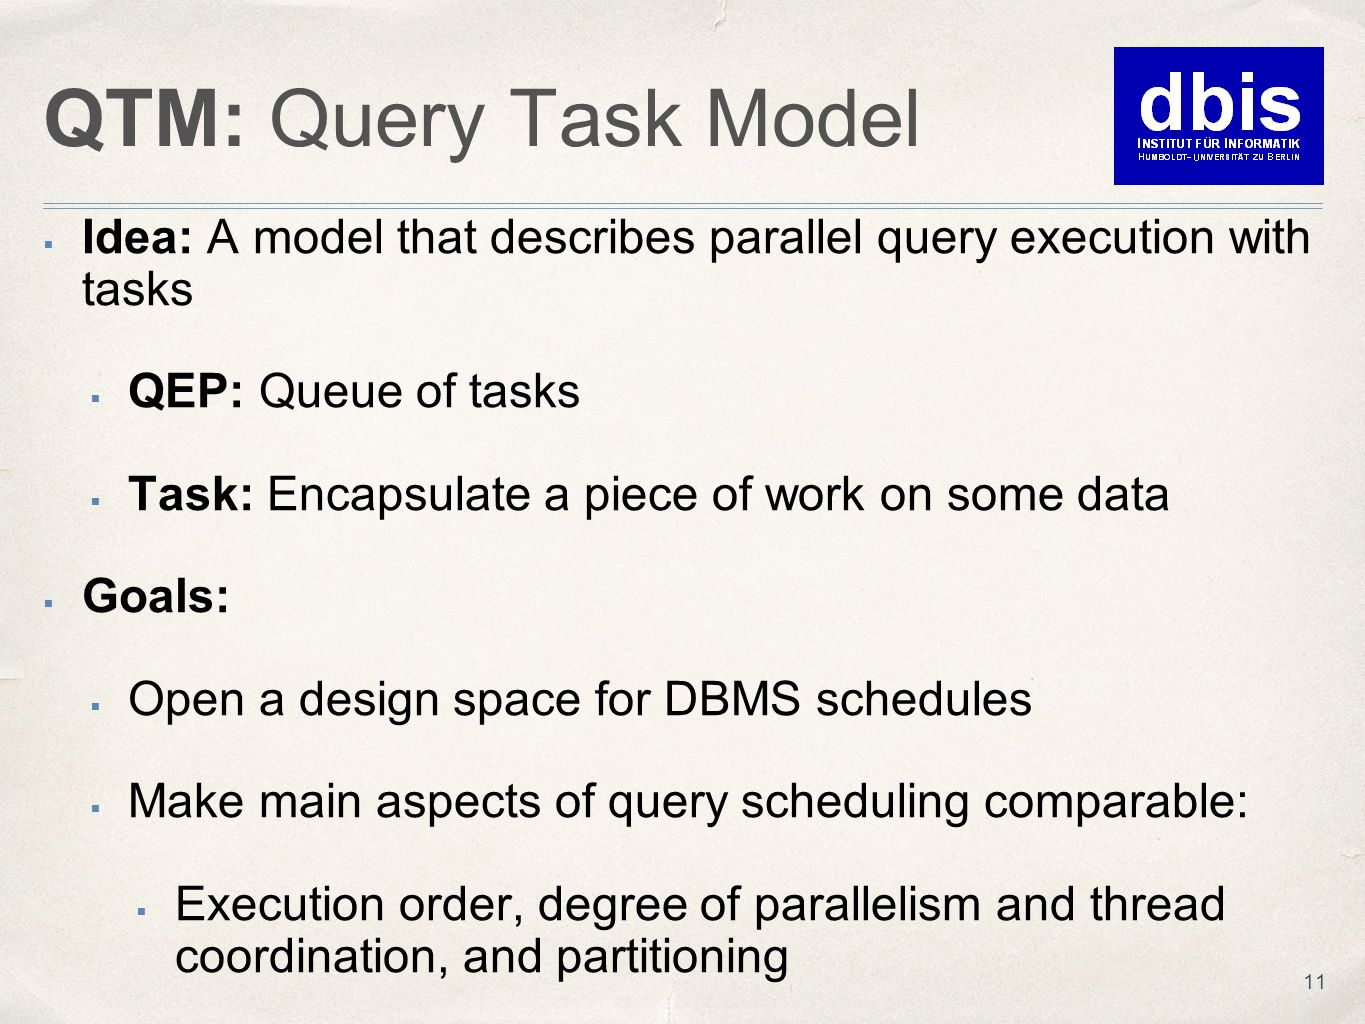 QTM: Query Task Model  Idea: A model that describes parallel query execution with tasks  QEP: Queue of tasks  Task: Encapsulate a piece of work on some data  Goals:  Open a design space for DBMS schedules  Make main aspects of query scheduling comparable:  Execution order, degree of parallelism and thread coordination, and partitioning 11